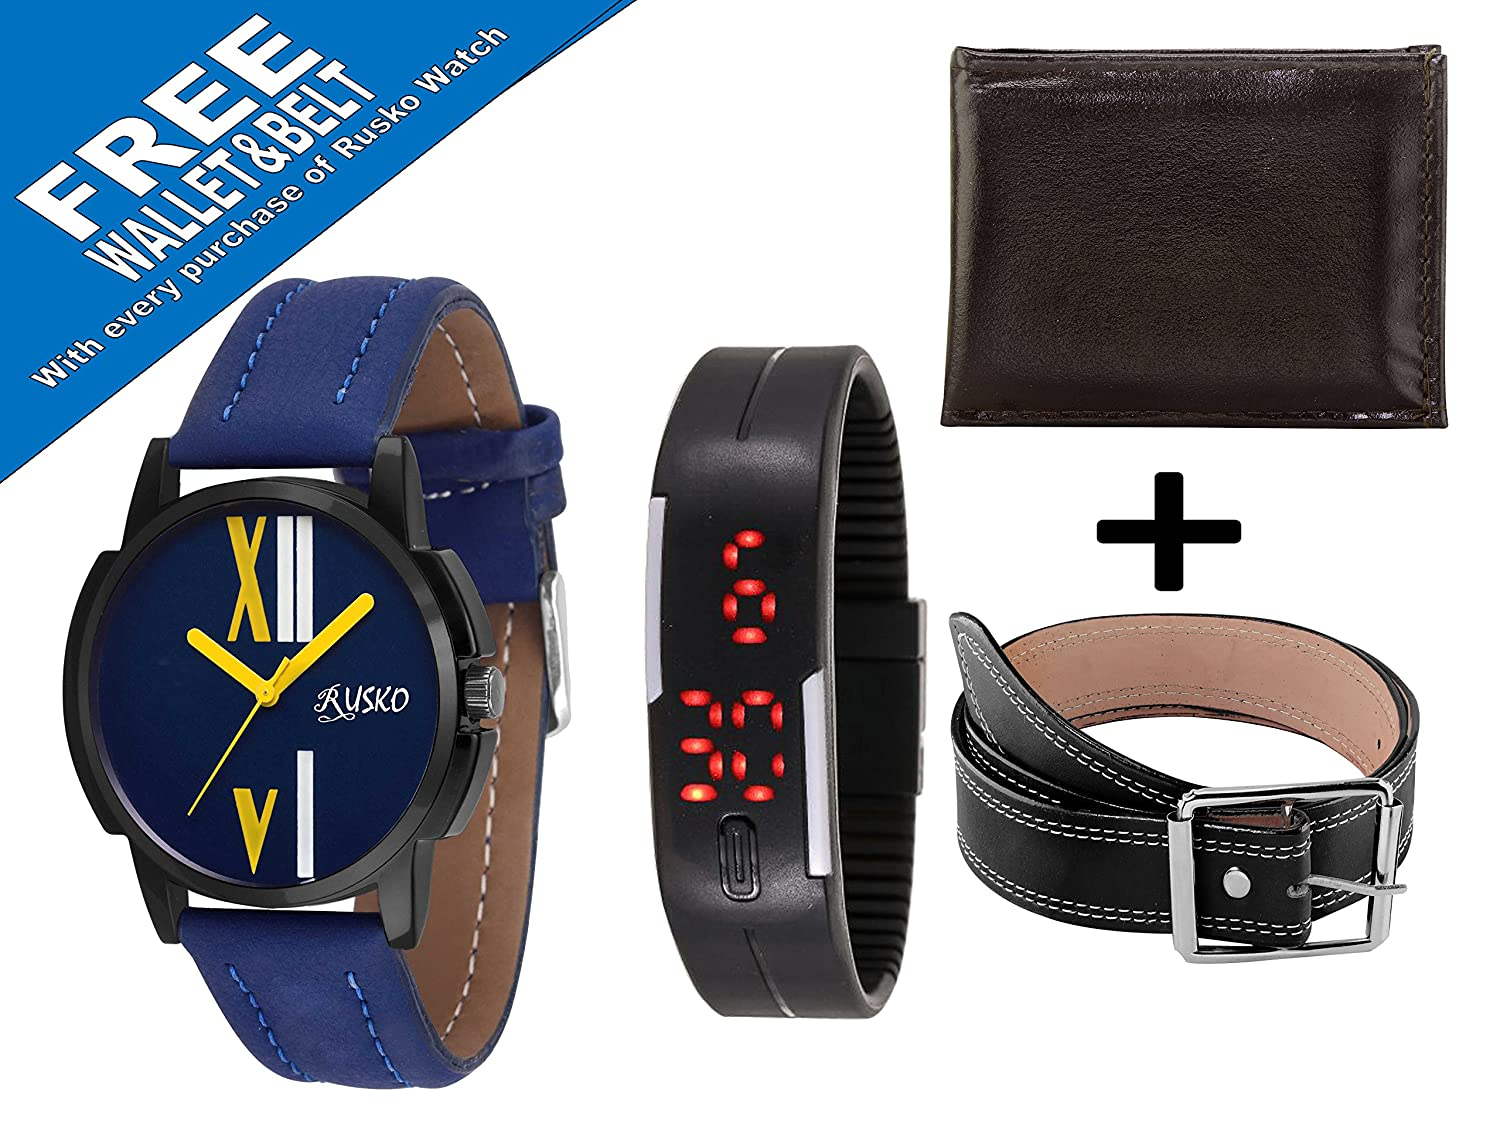 Rusko Analog Watch + Free Digital Band, Gents Wallet and Belt